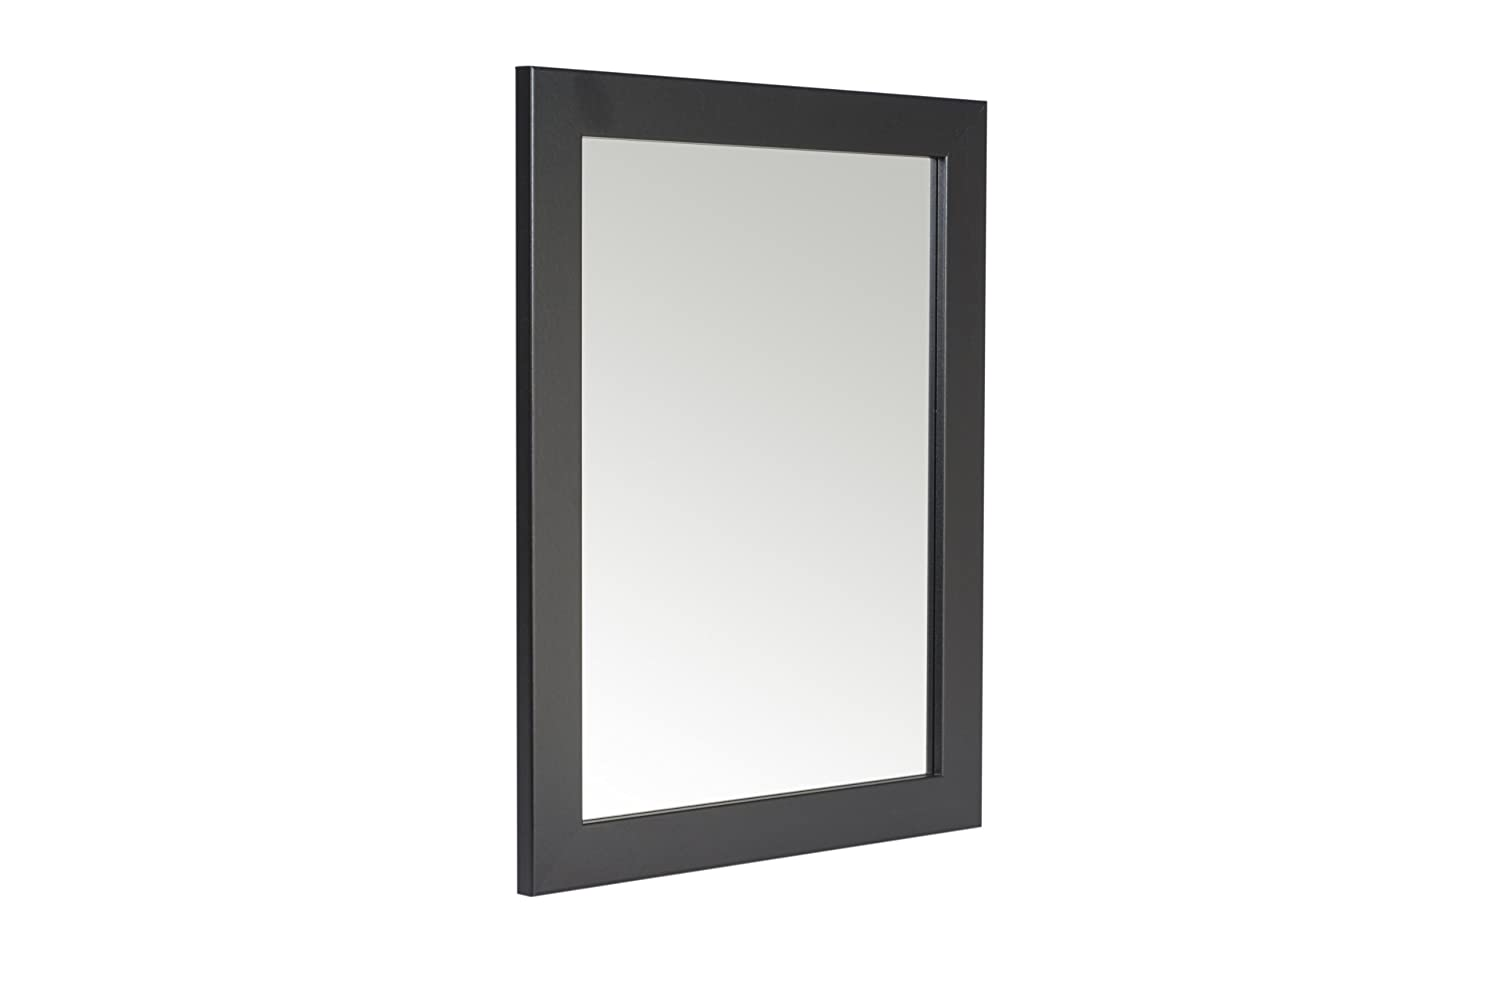 48 x 58cm Black Framed Mirror with Wall Hanging Fixings